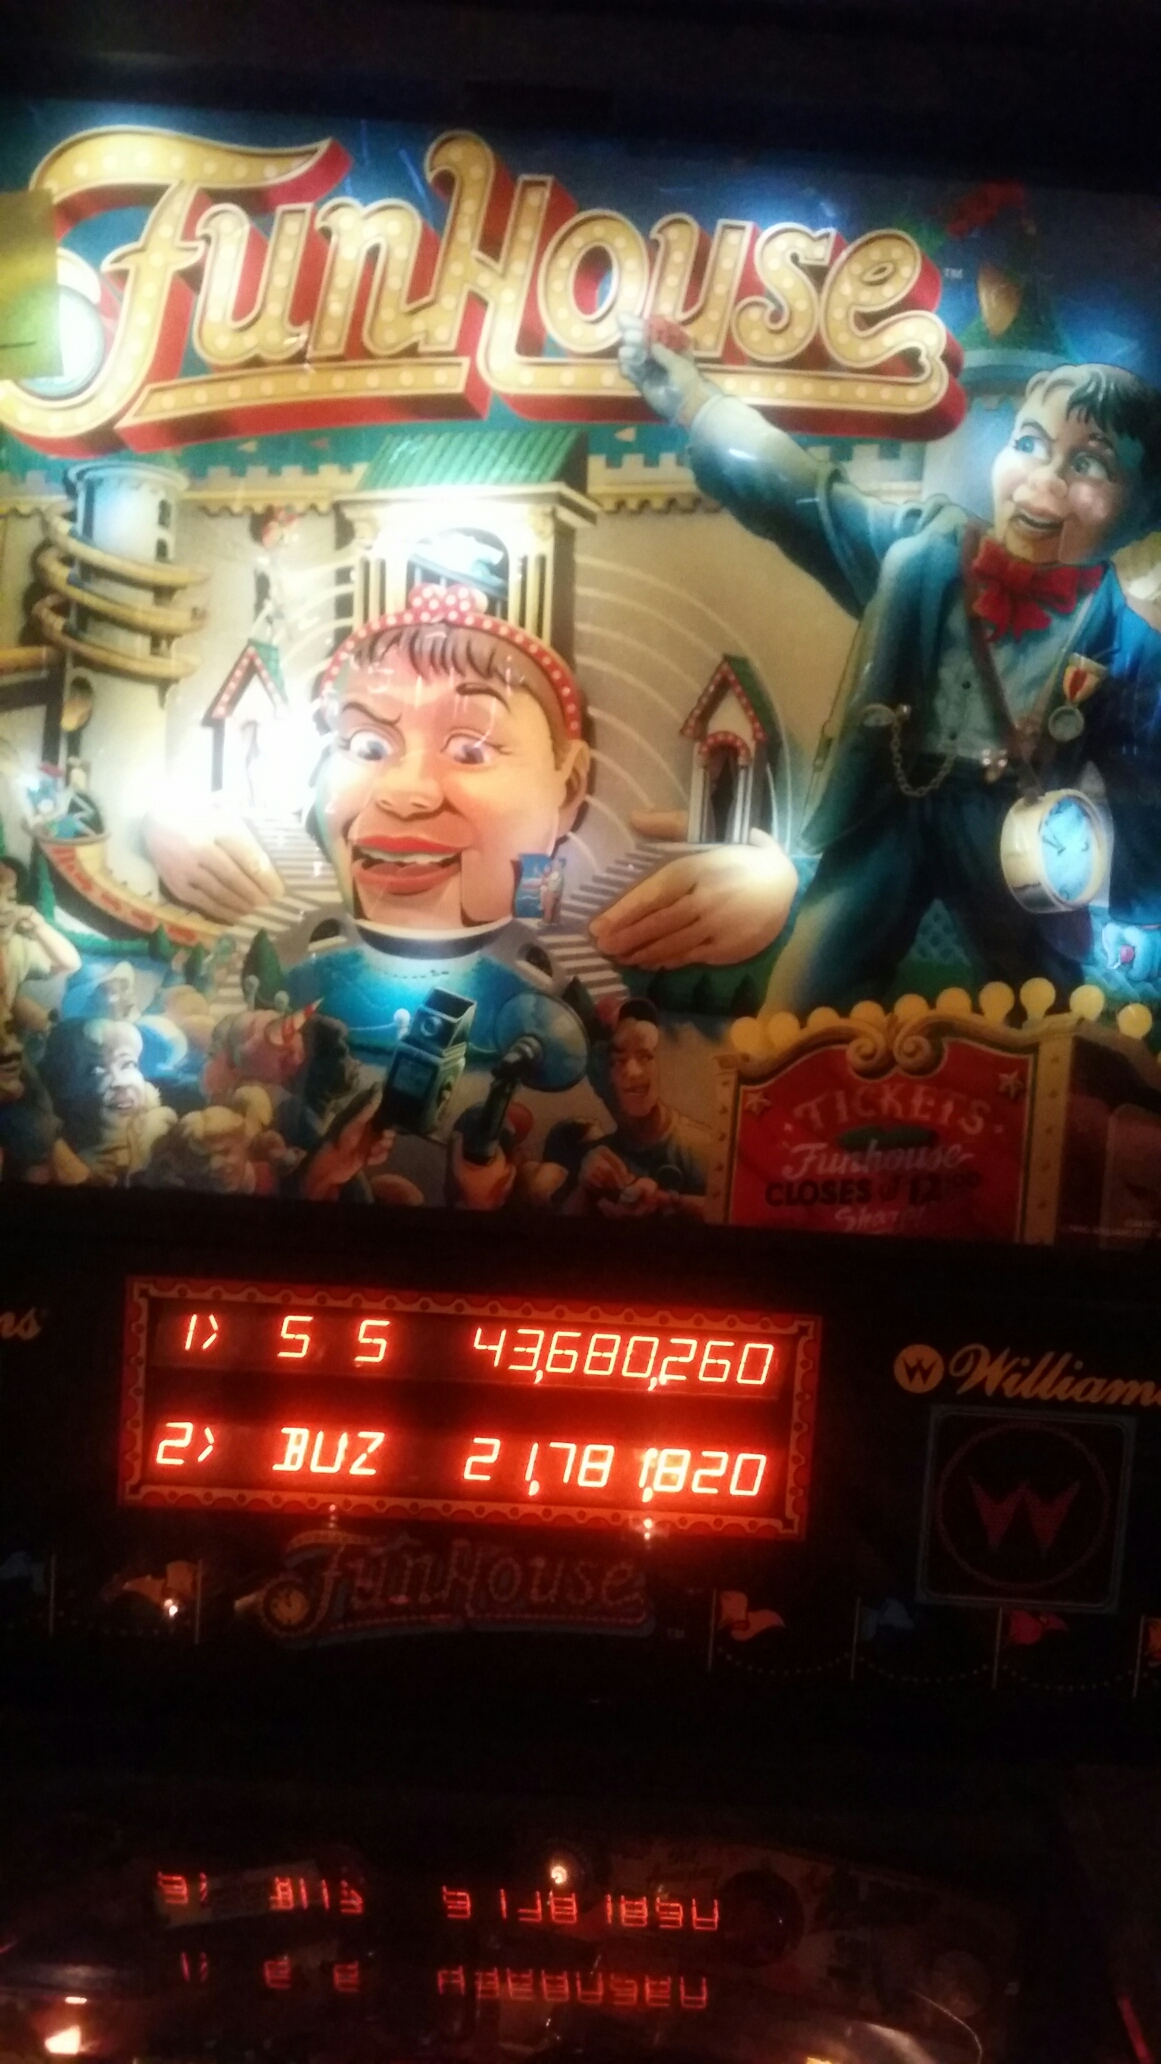 FunHouse 43,680,260 points